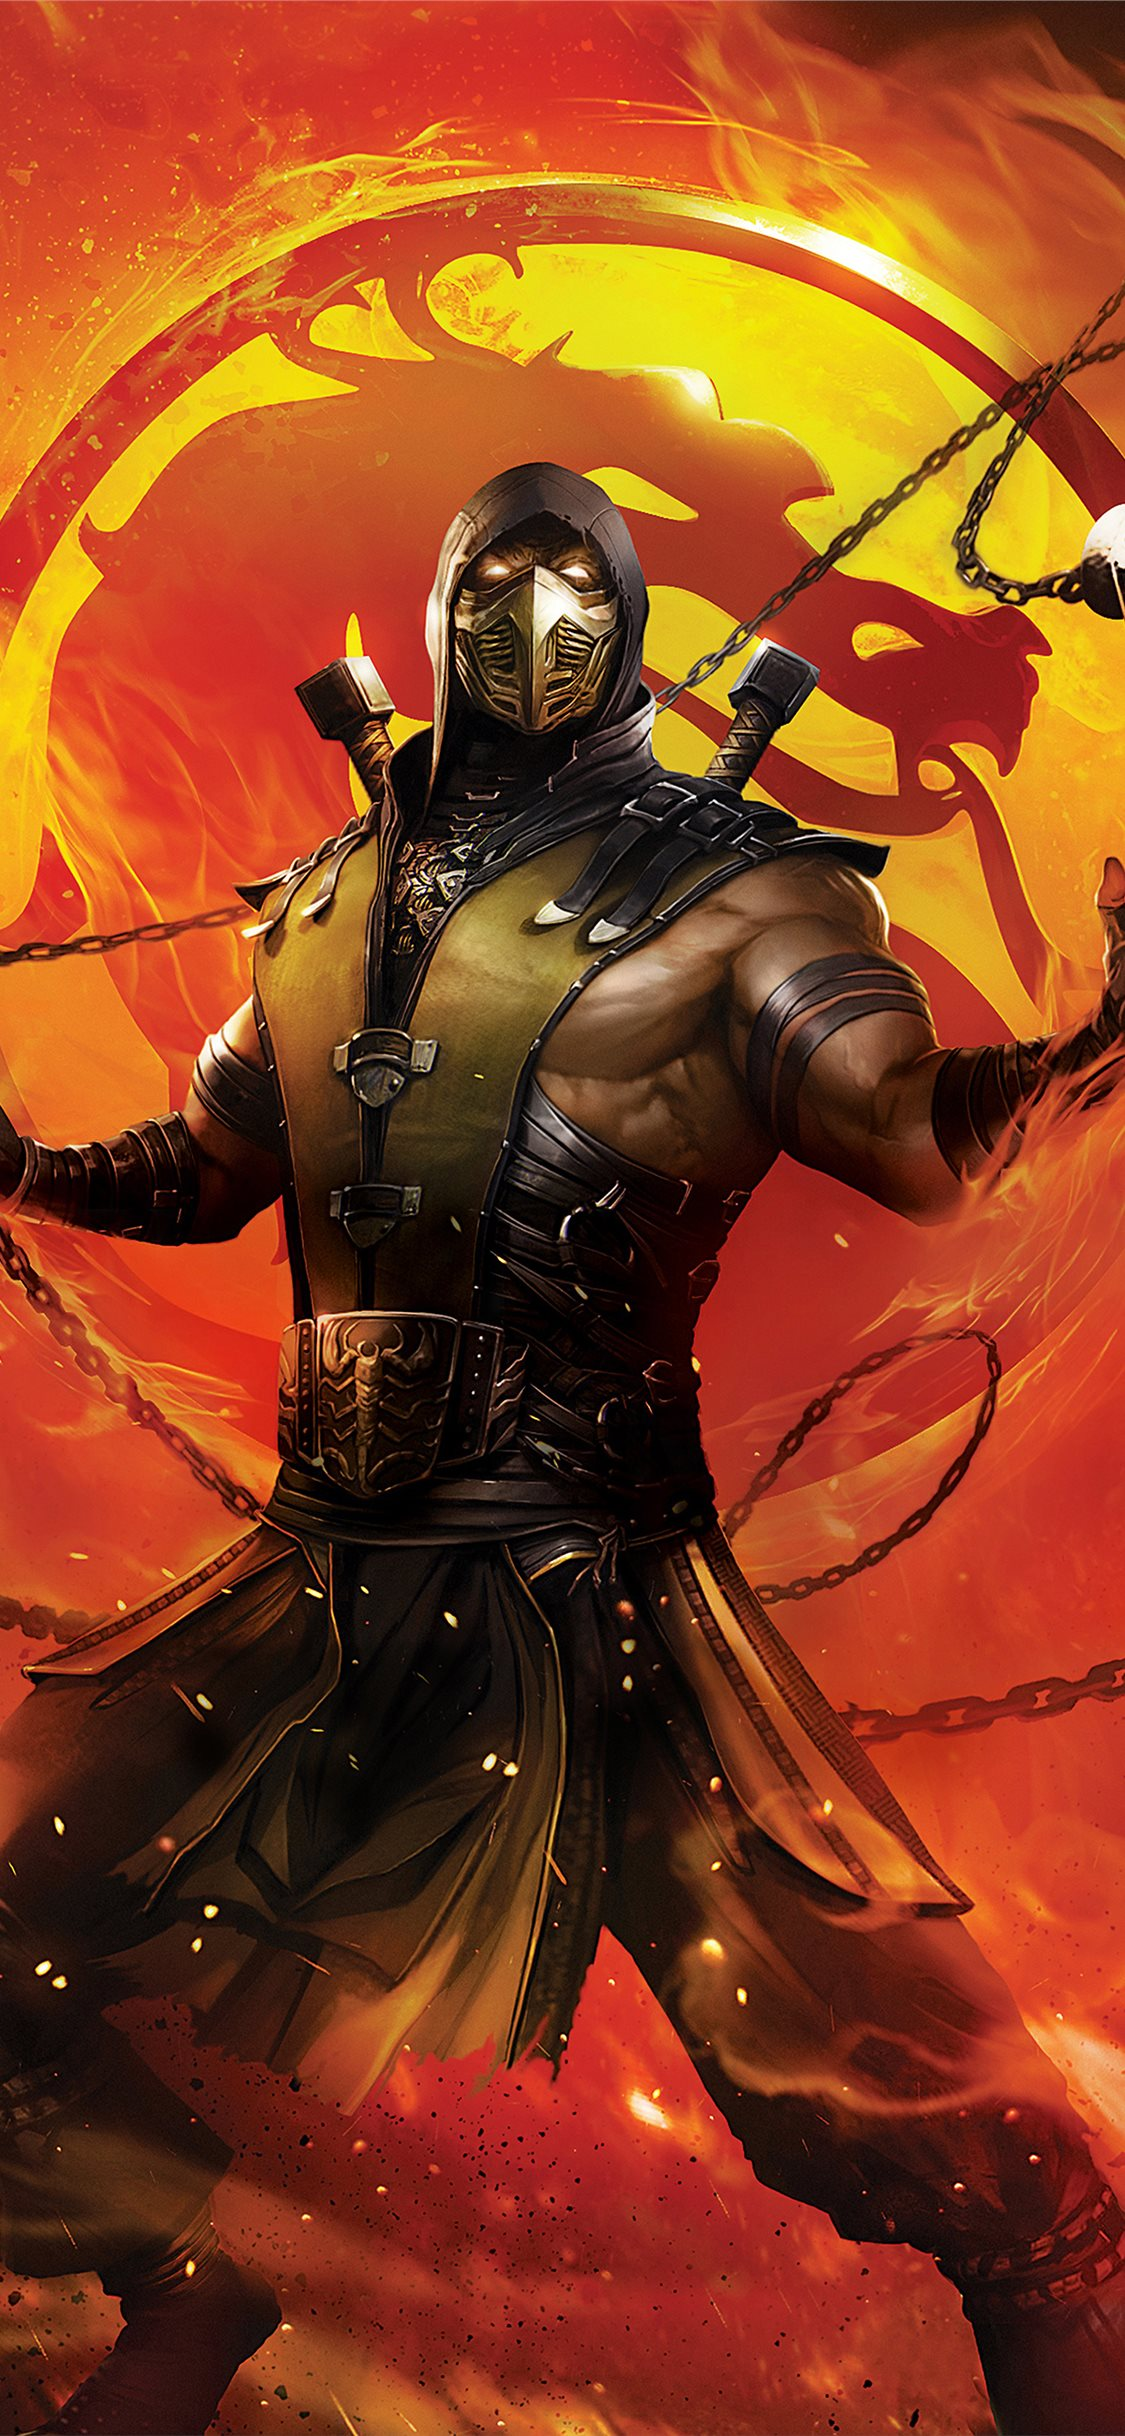 mortal kombat legends scorpions revenge 2020 iphone x wallpaper ilikewallpaper com